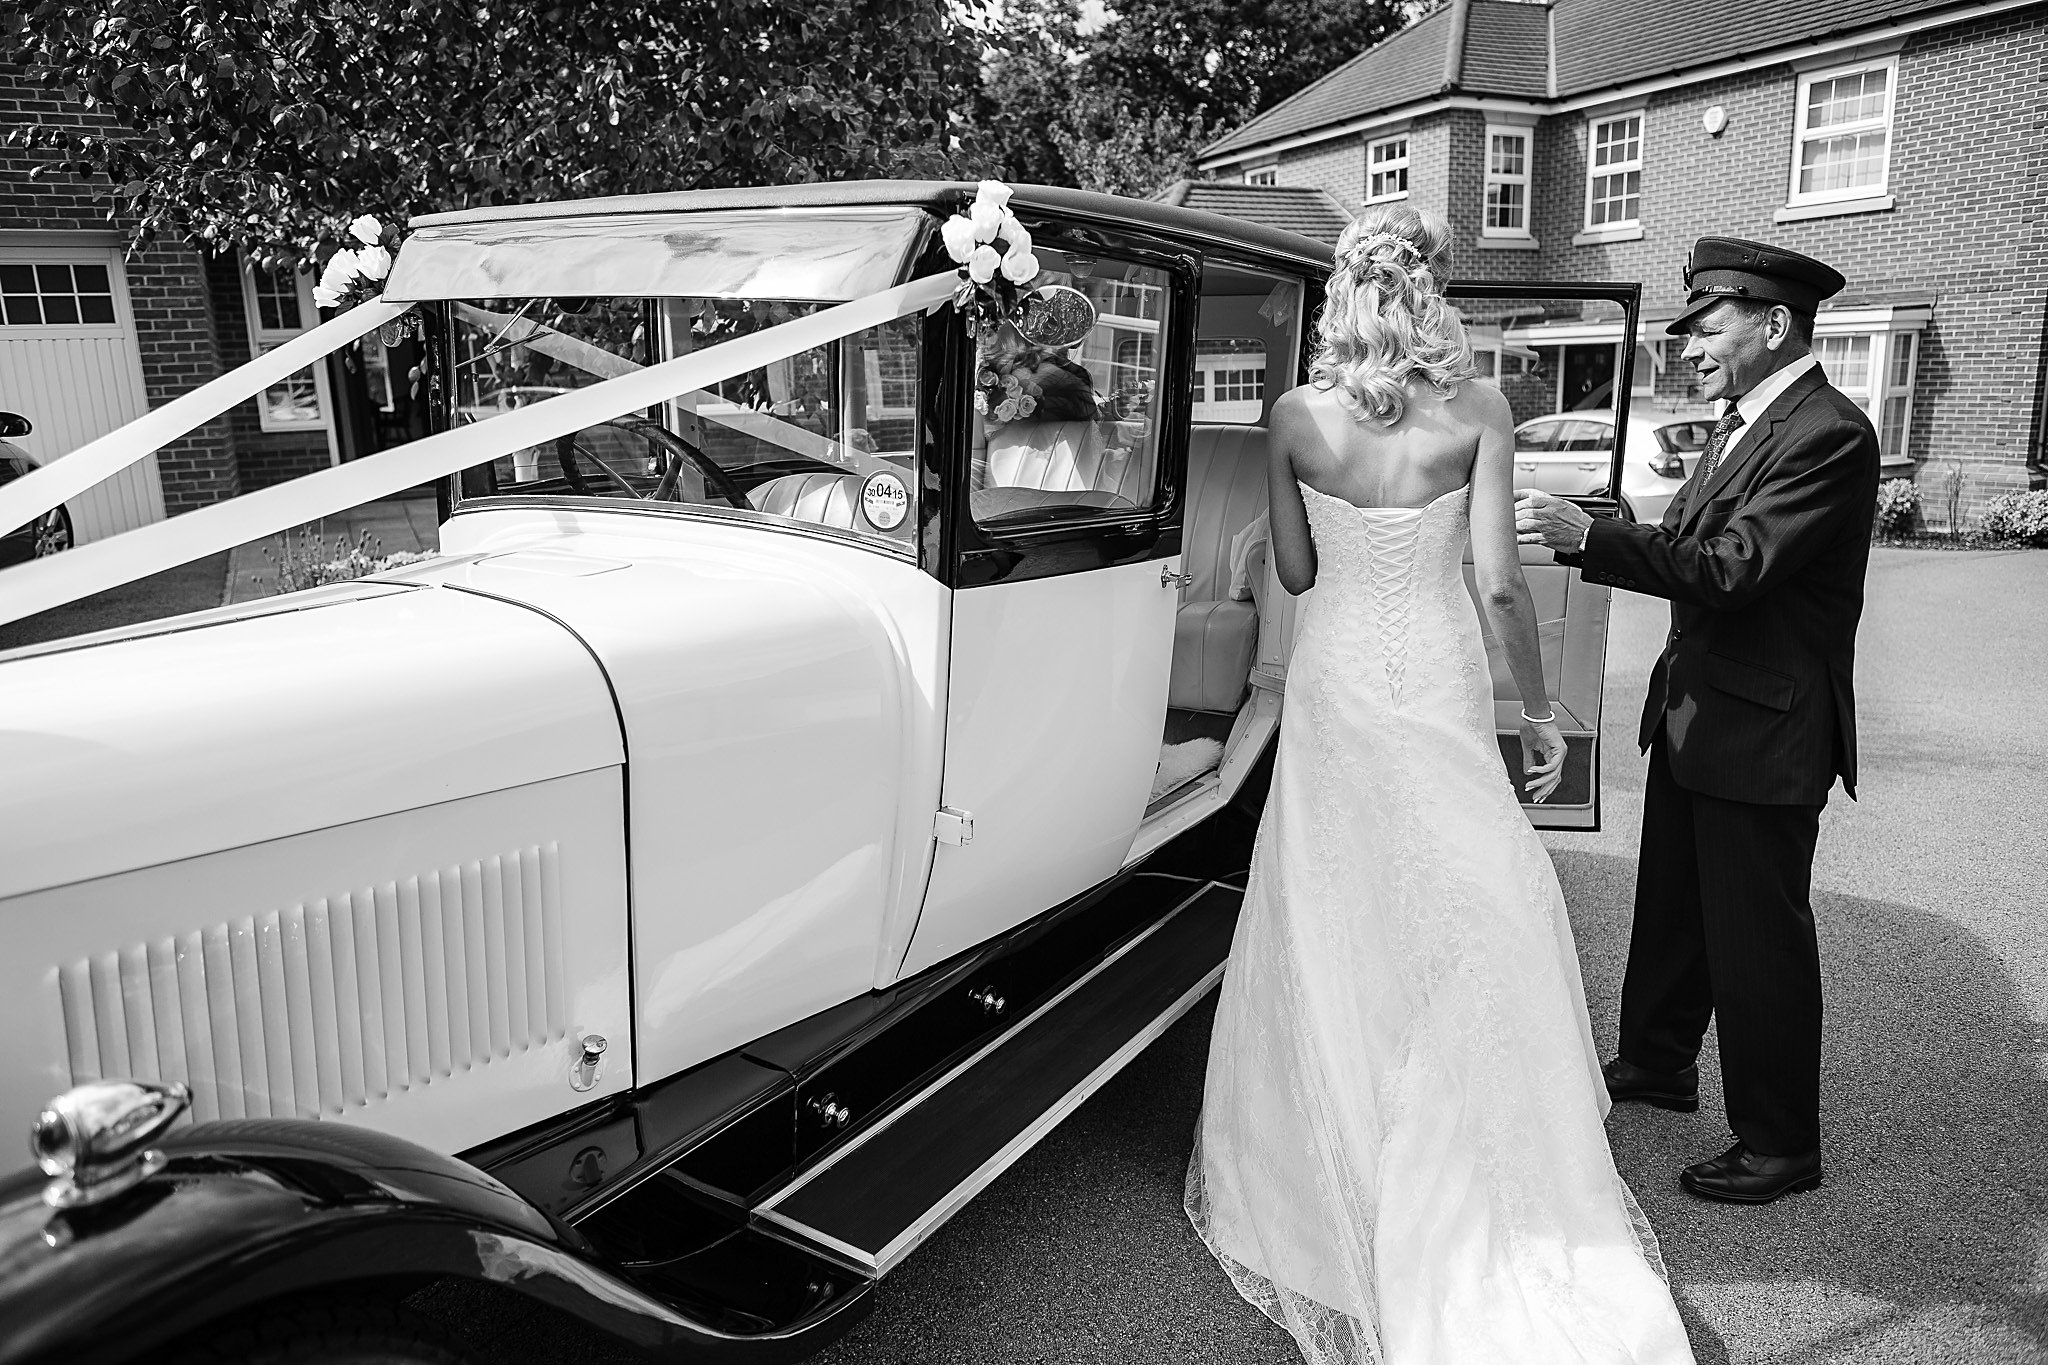 Bride gets into car